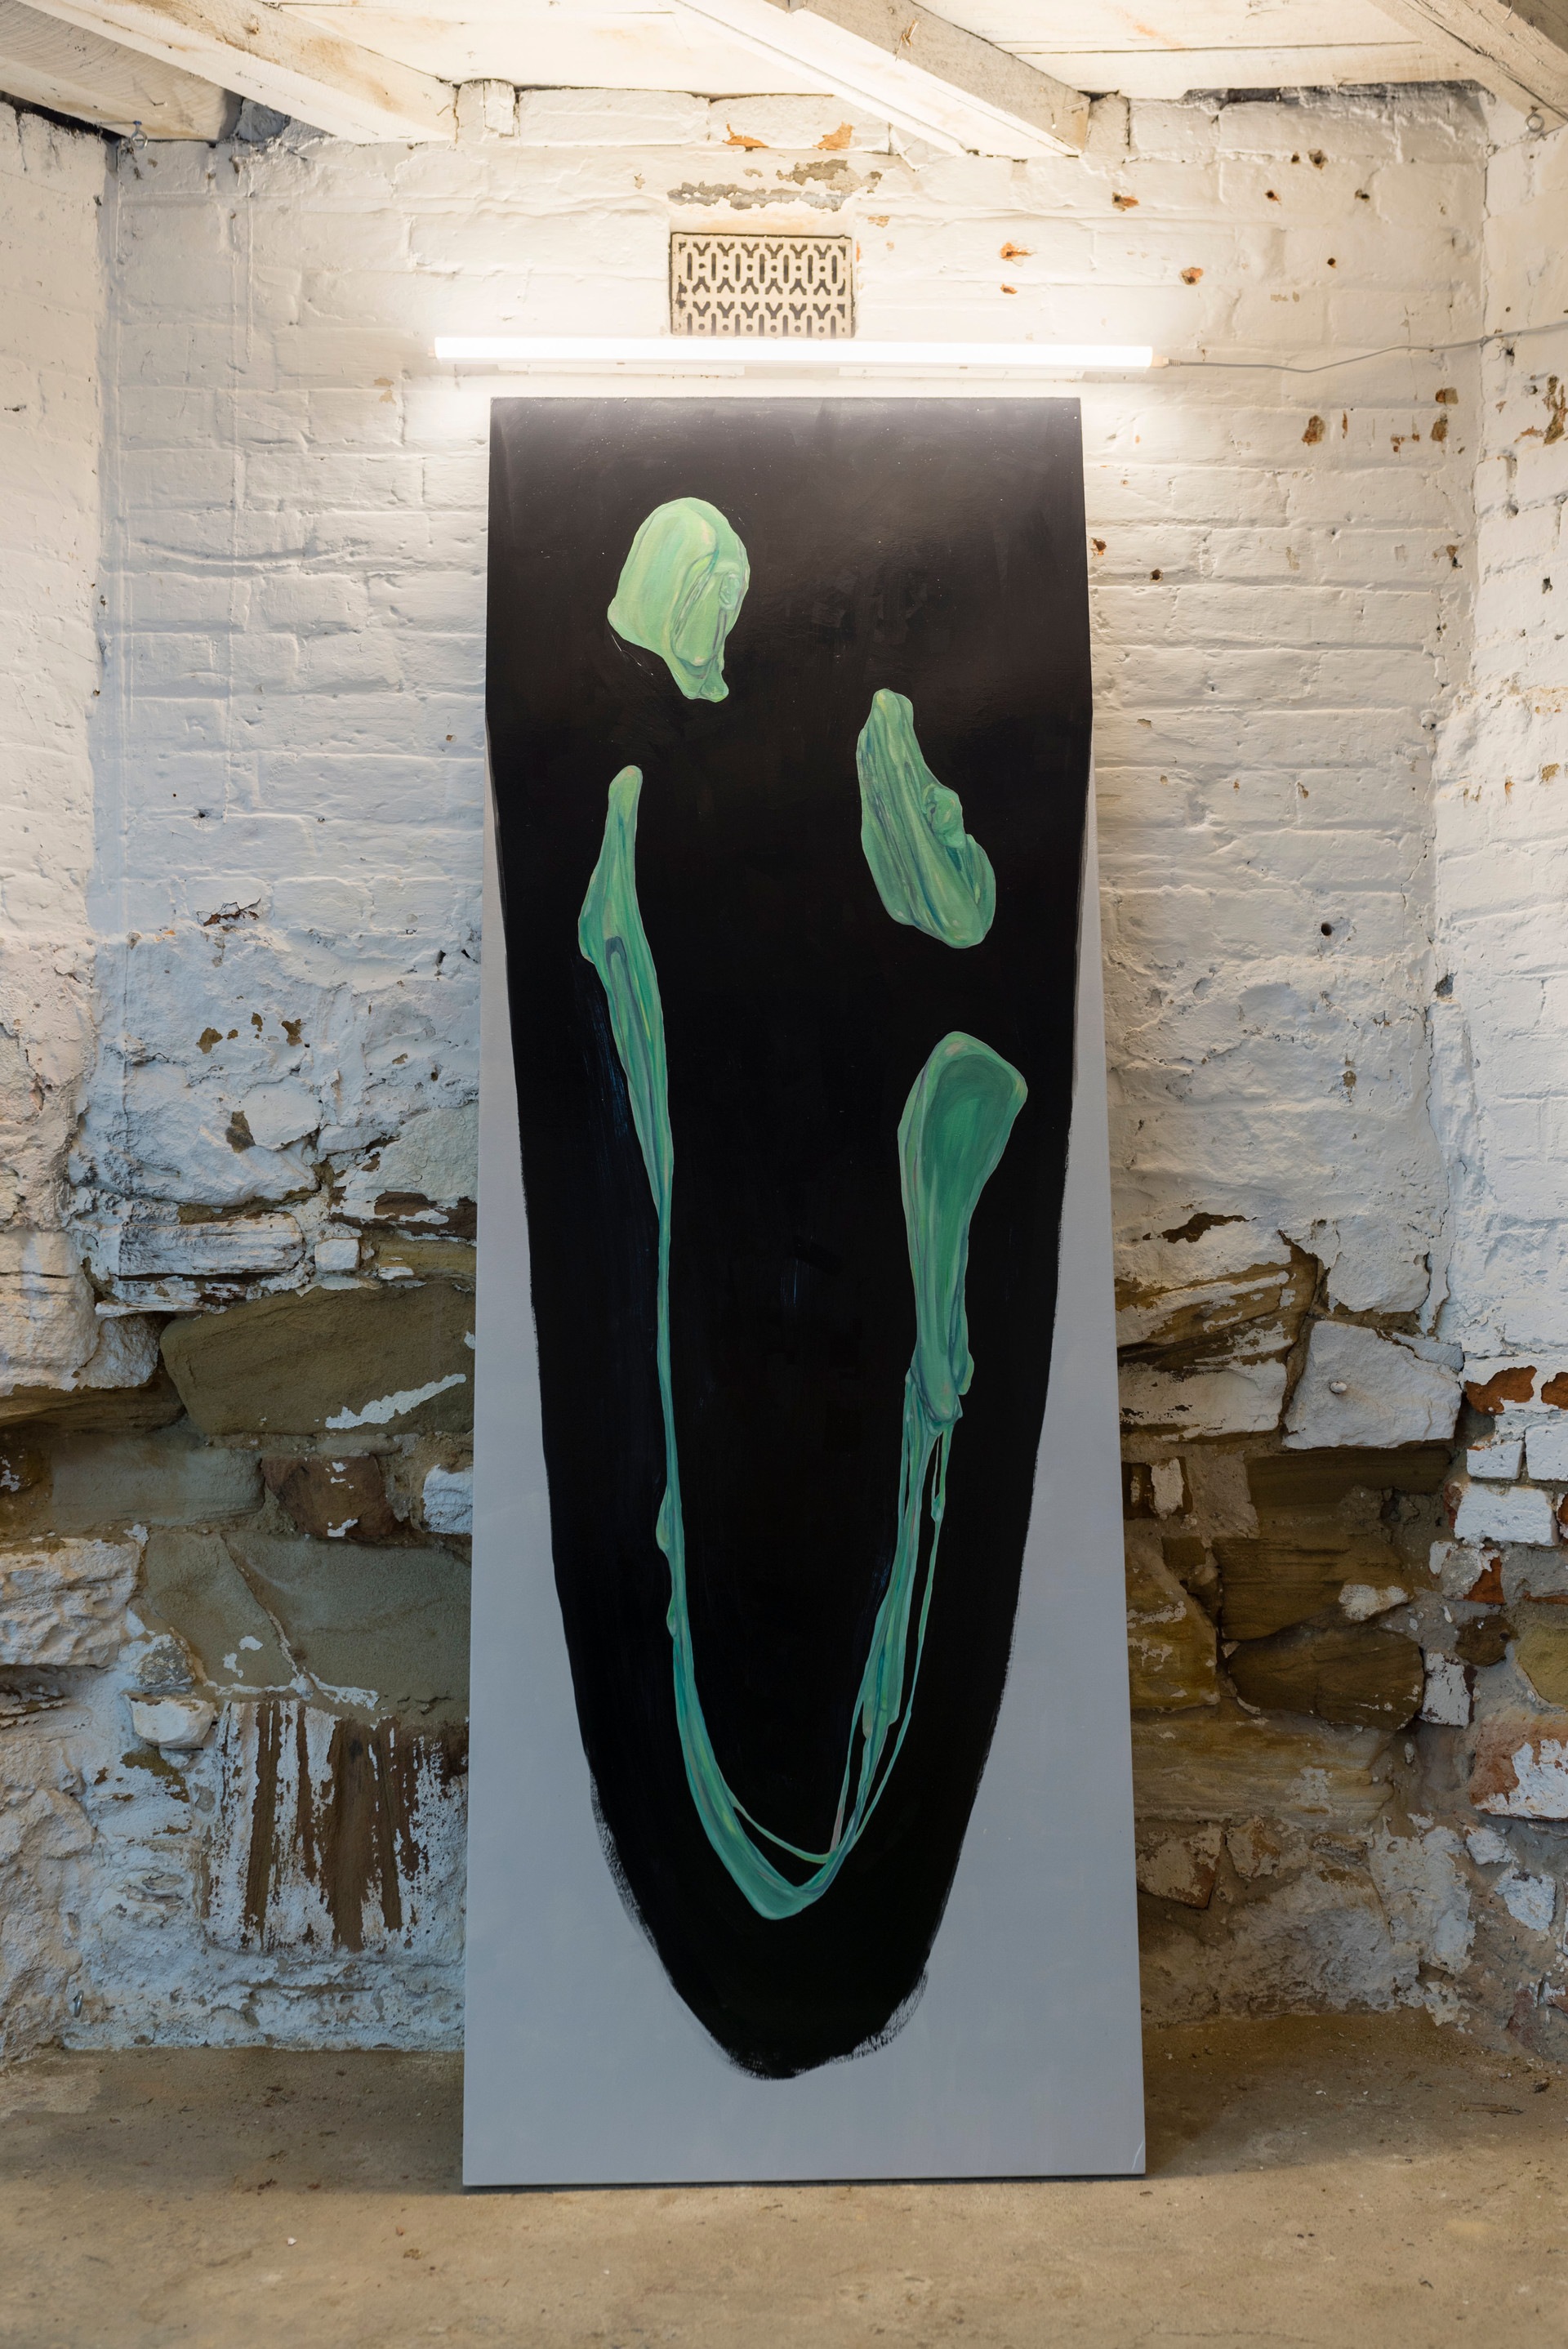 Gum Face, 2017, oil on board and LED light, 205 x 72 cm